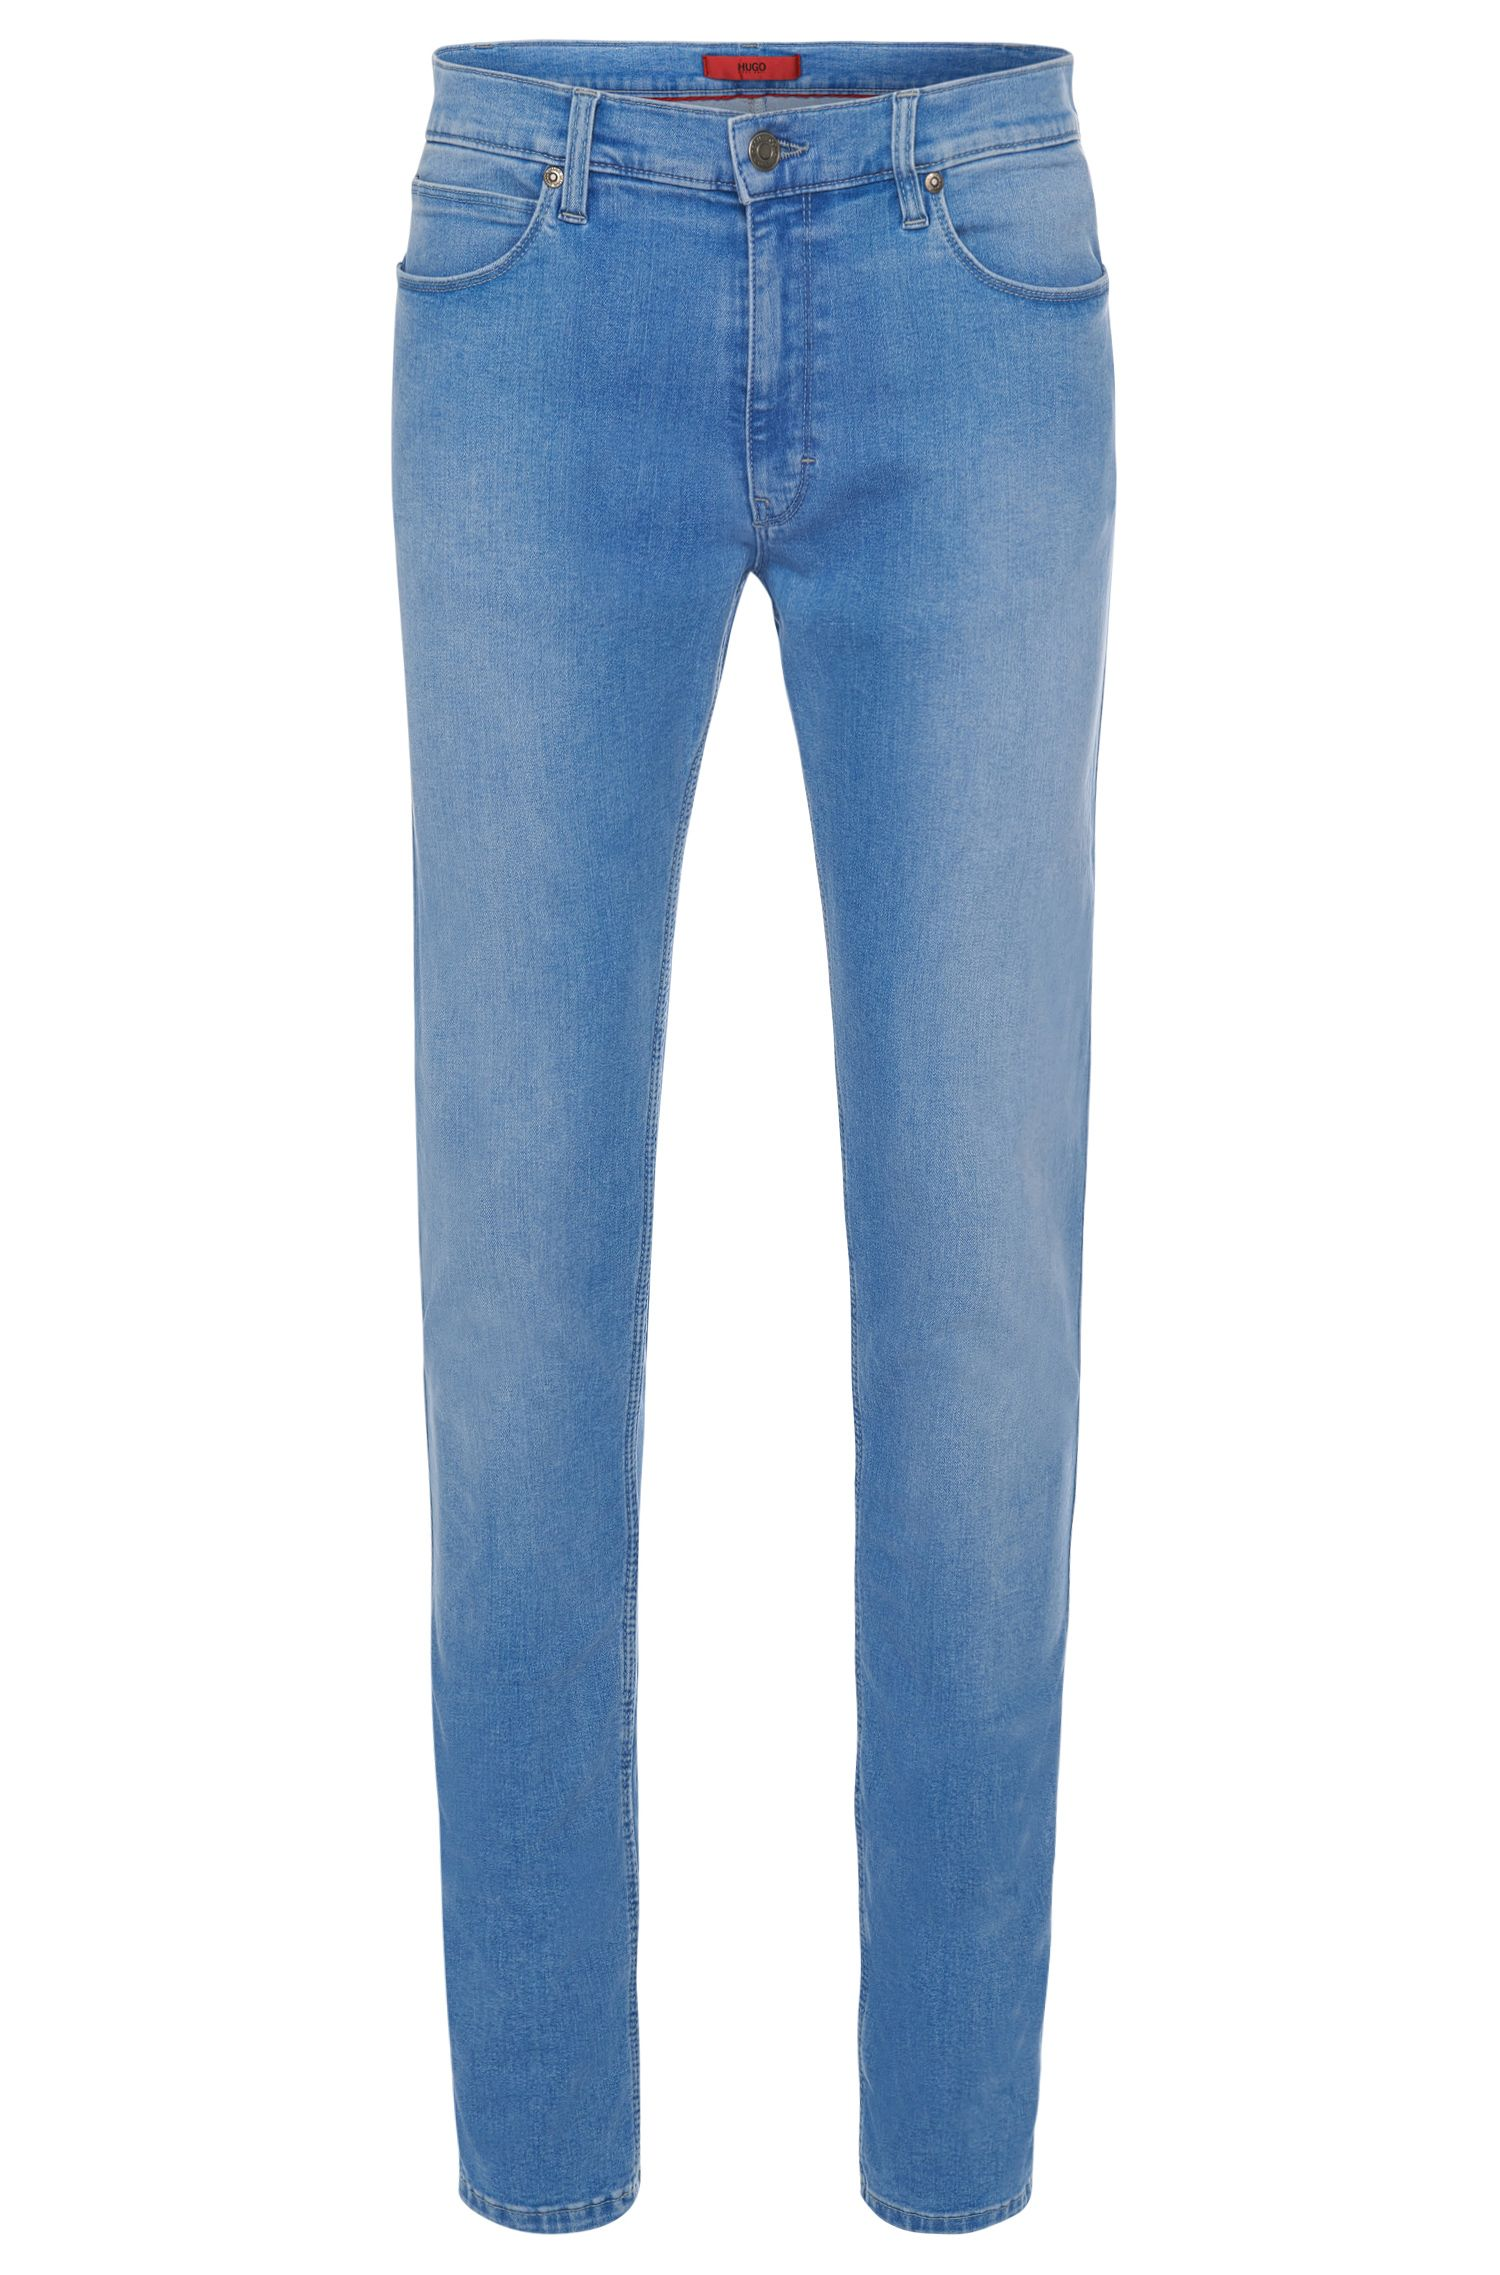 11.75 oz Stretch Cotton Blend Jeans, Slim Fit | Hugo 734